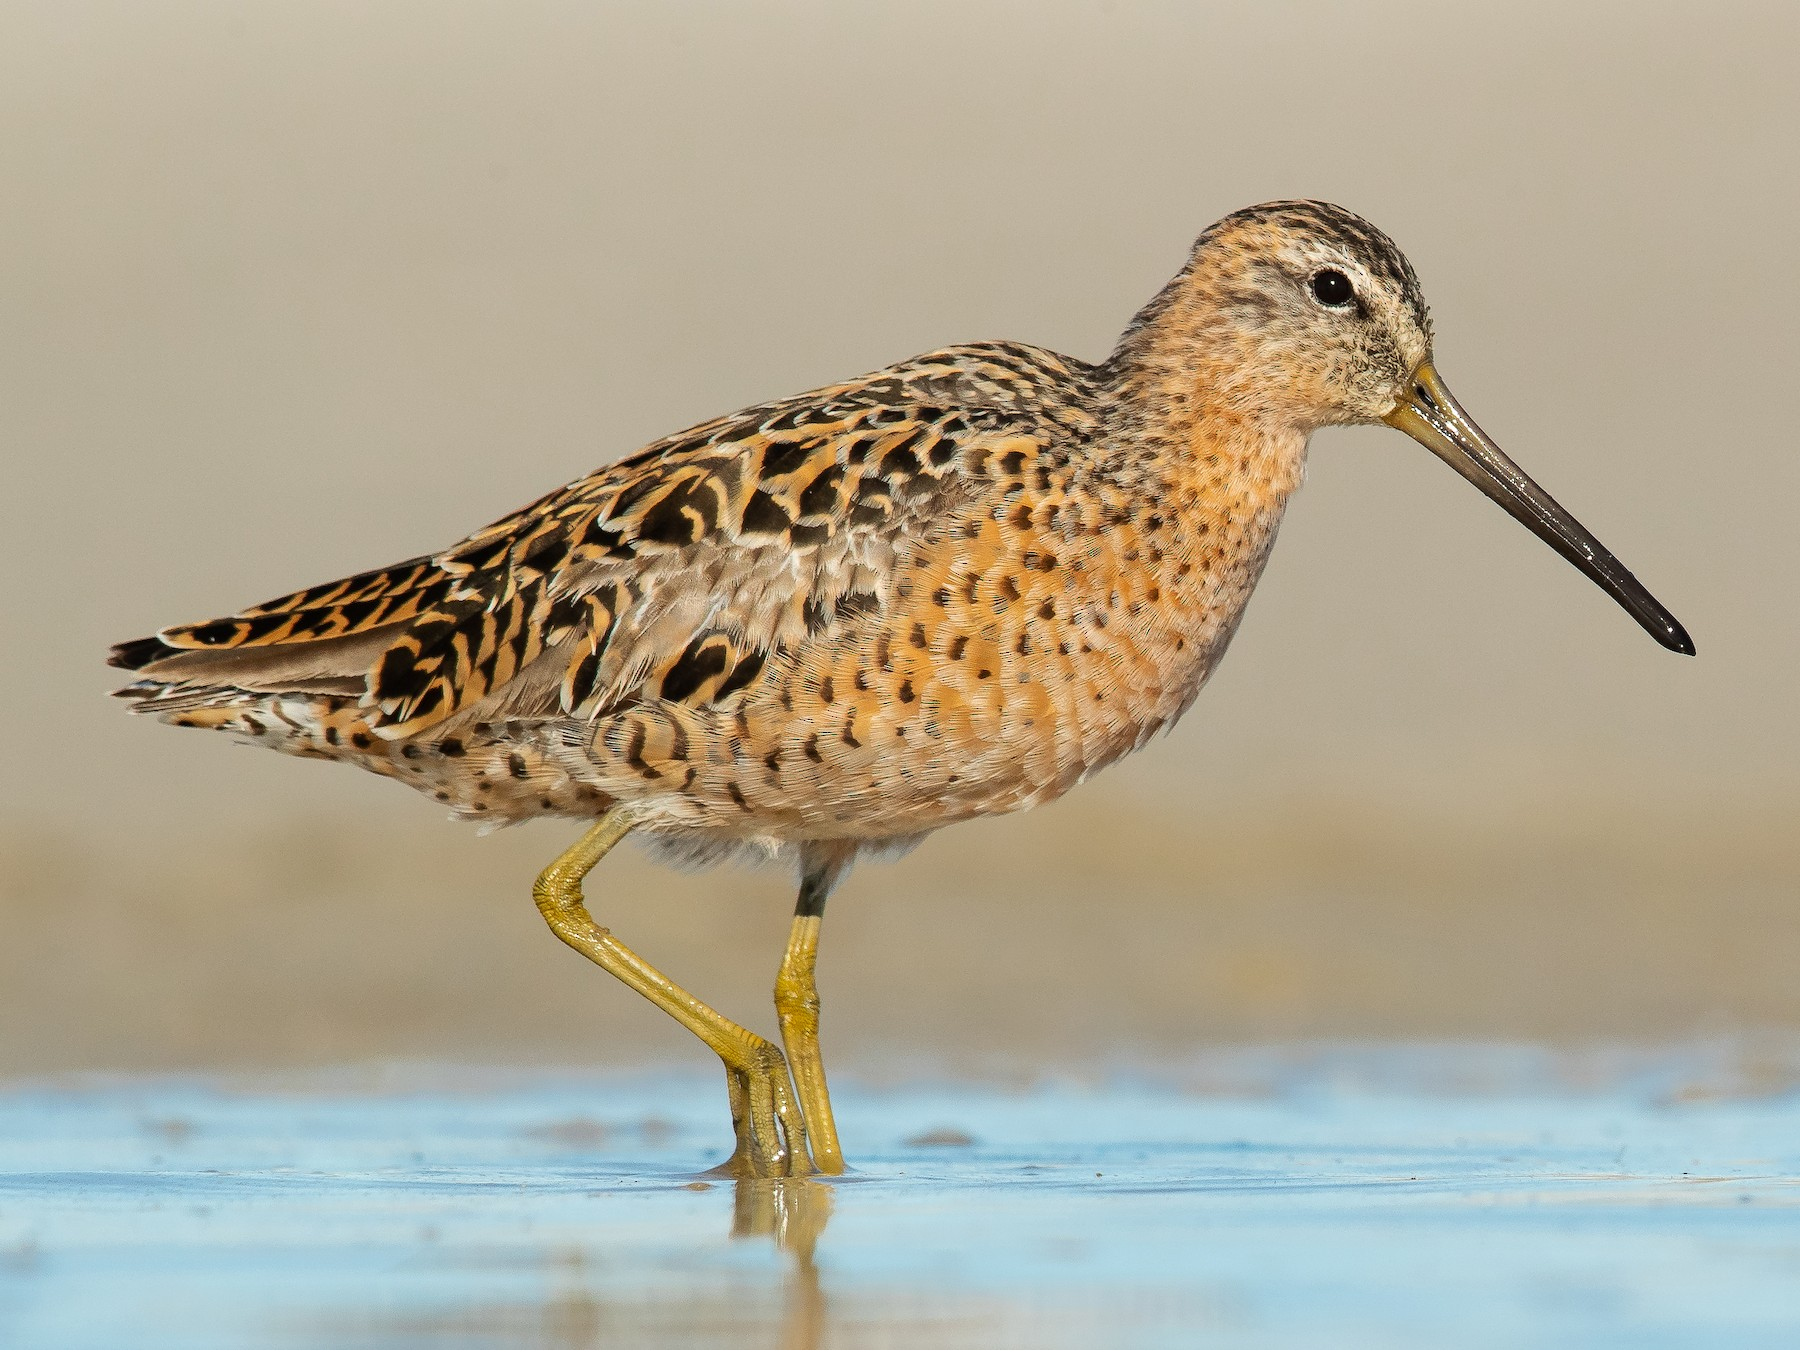 Short-billed Dowitcher - Dorian Anderson